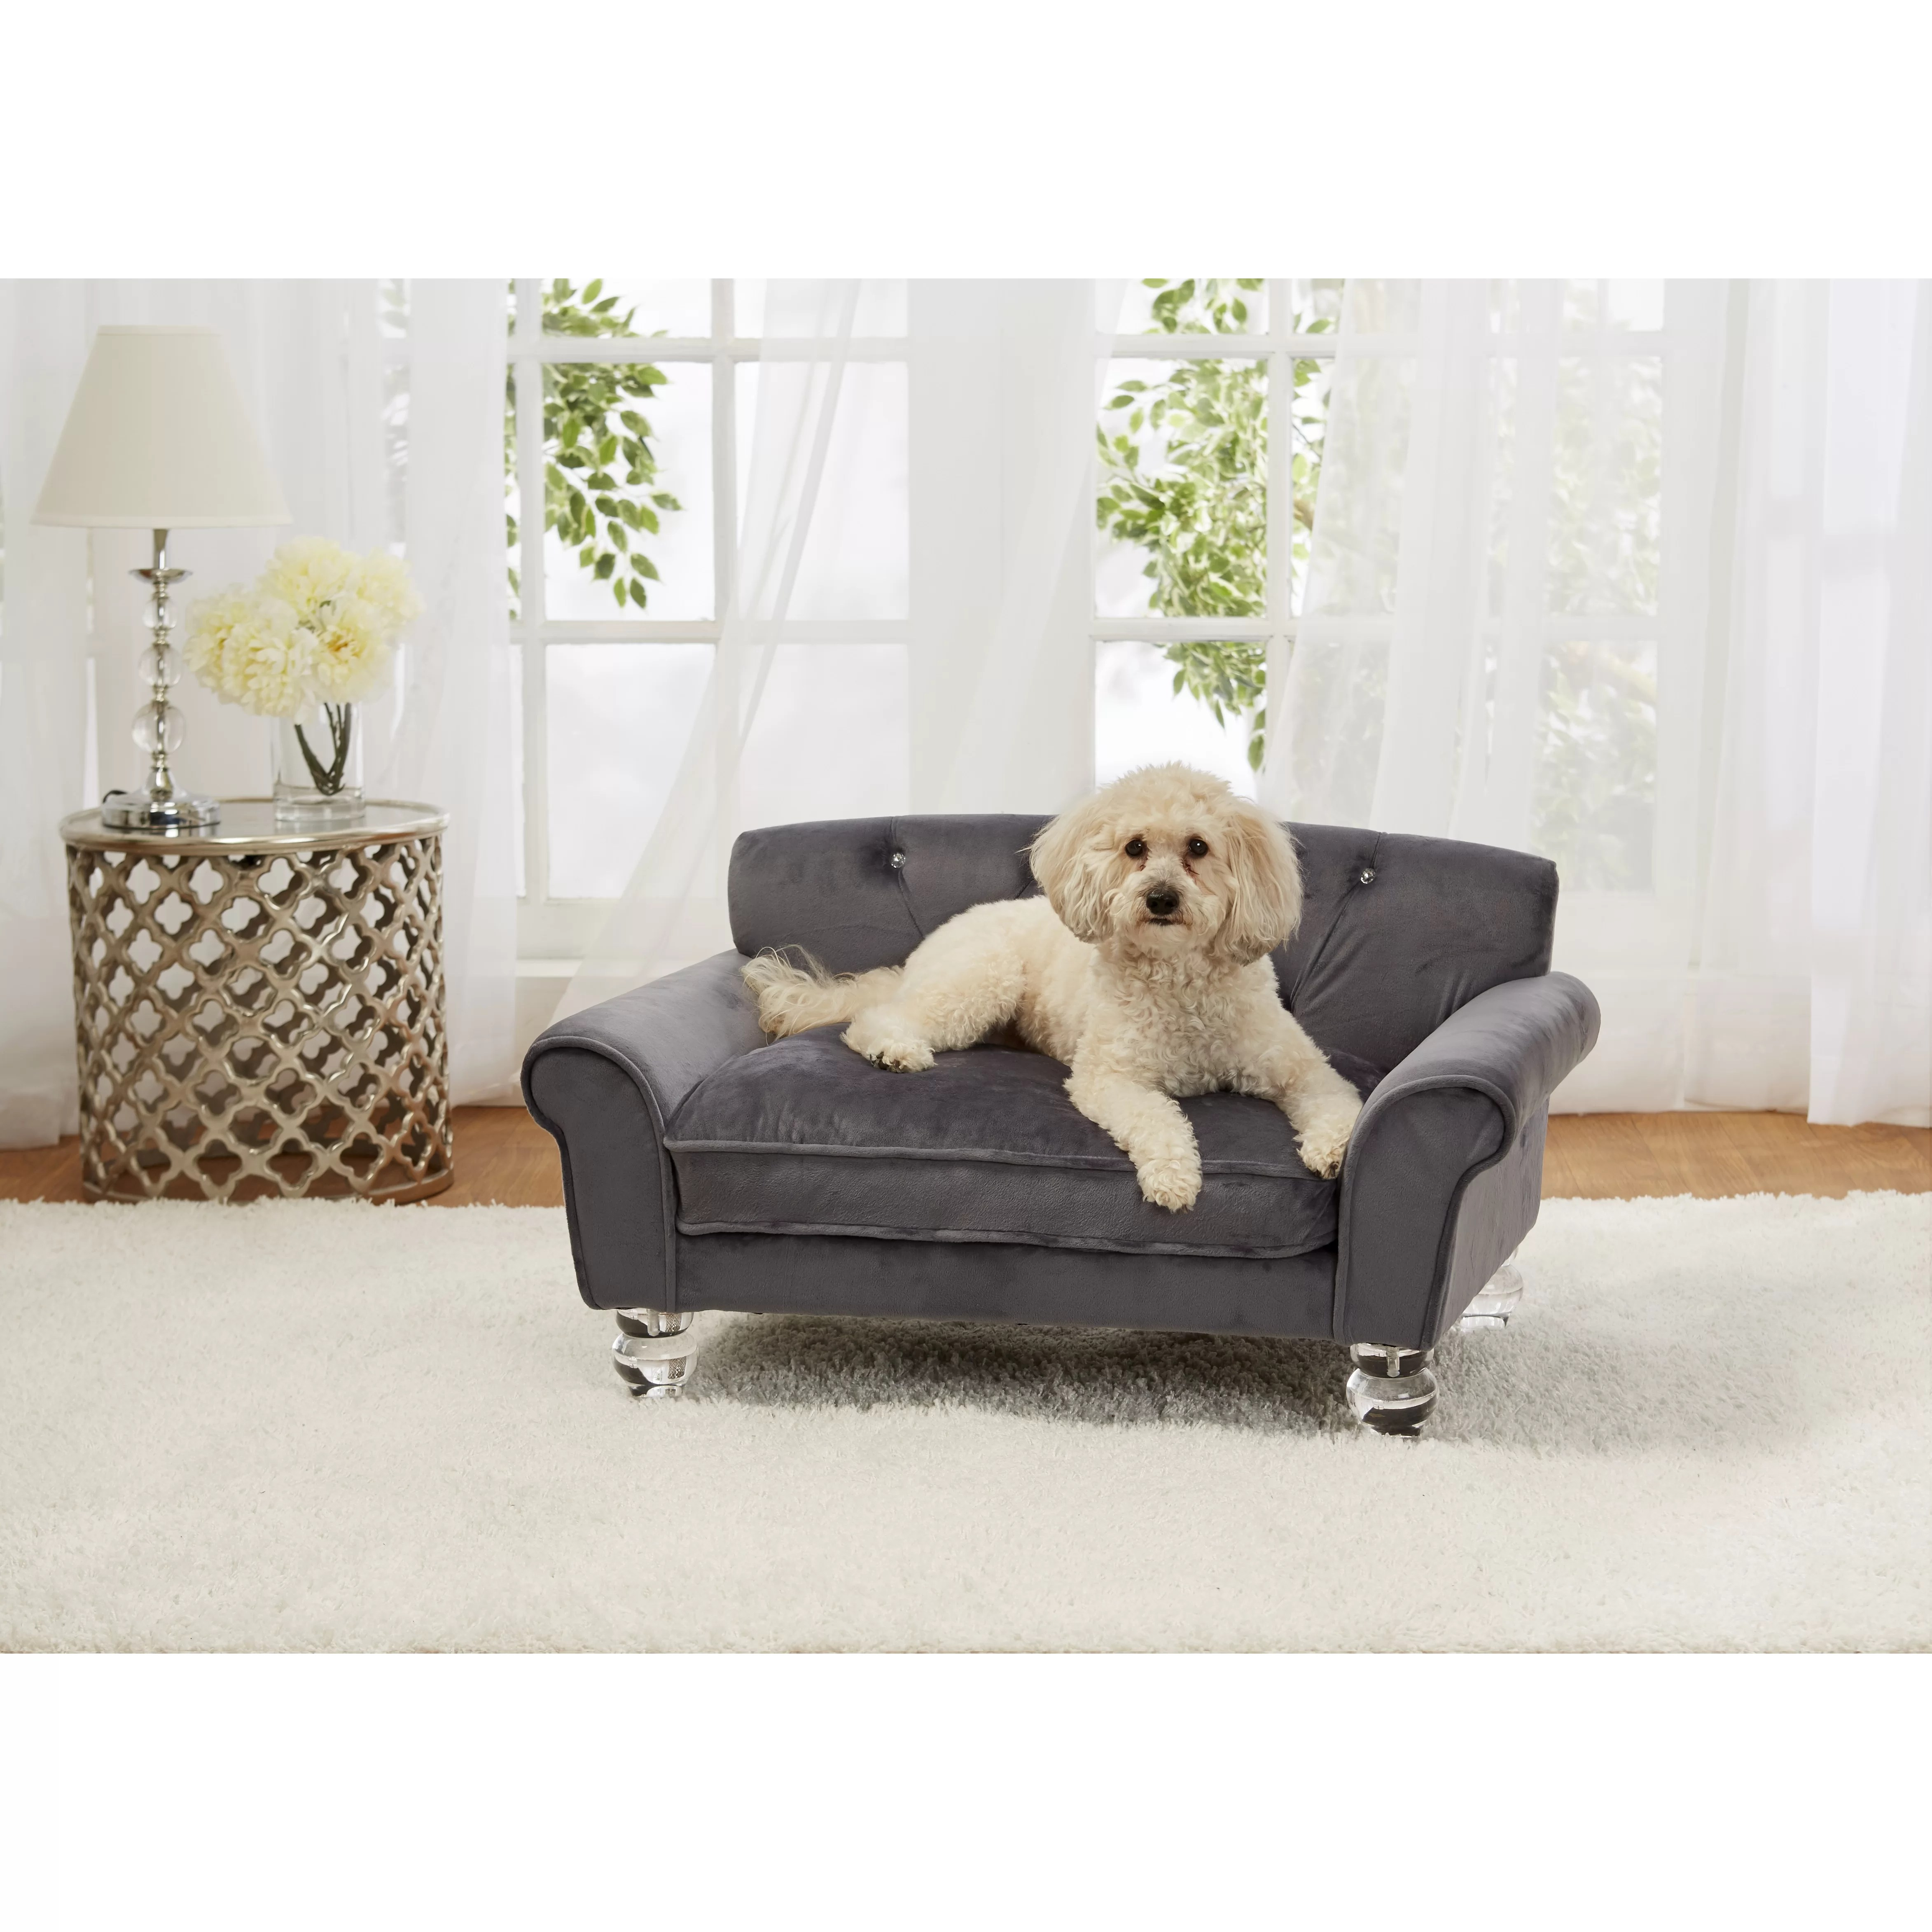 velvet 5in1 air sofa bed reviews platform singapore enchanted home pet la joie dog with cushion